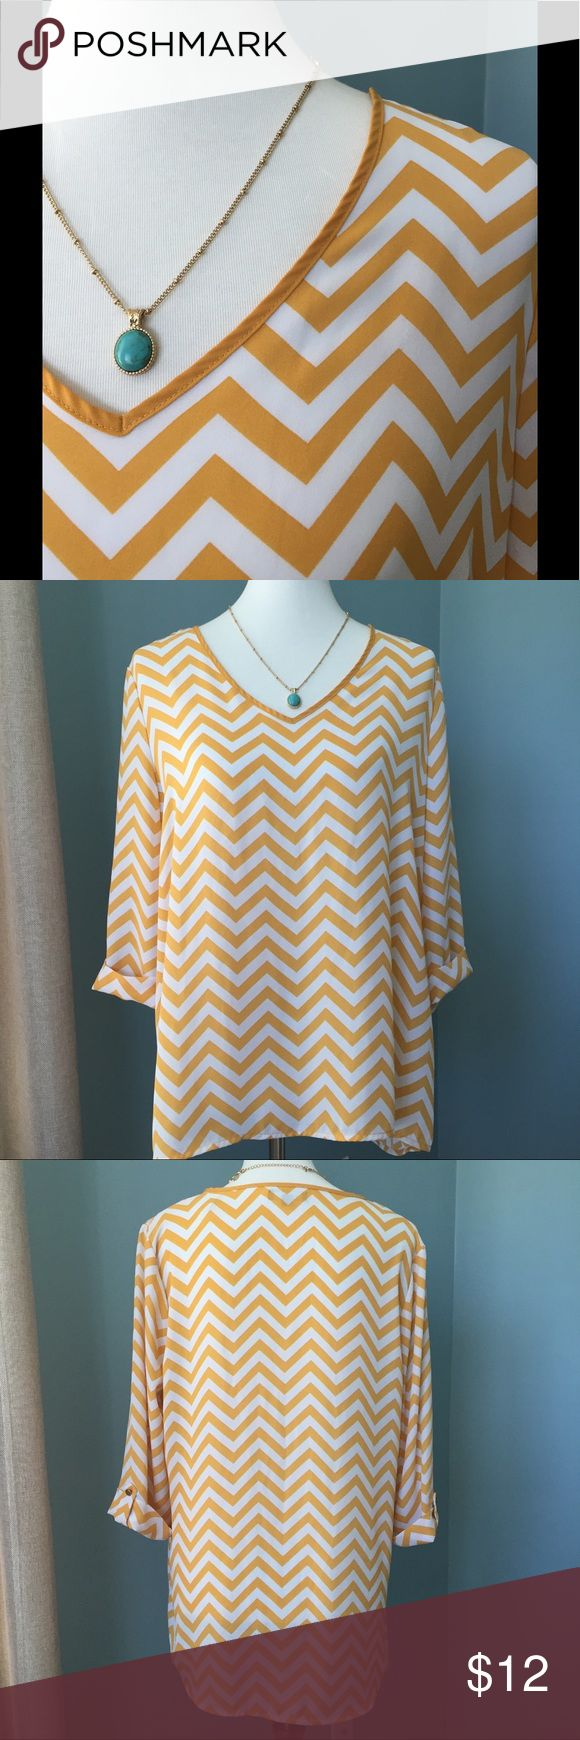 Kiara Chevron Top Lightweight and comfortable - gold/white chevron print - 100% poly - cuffed 3/4 sleeves w/ tabs - v-neck - 2small flaws in fabric (see pictures) Kiara Tops